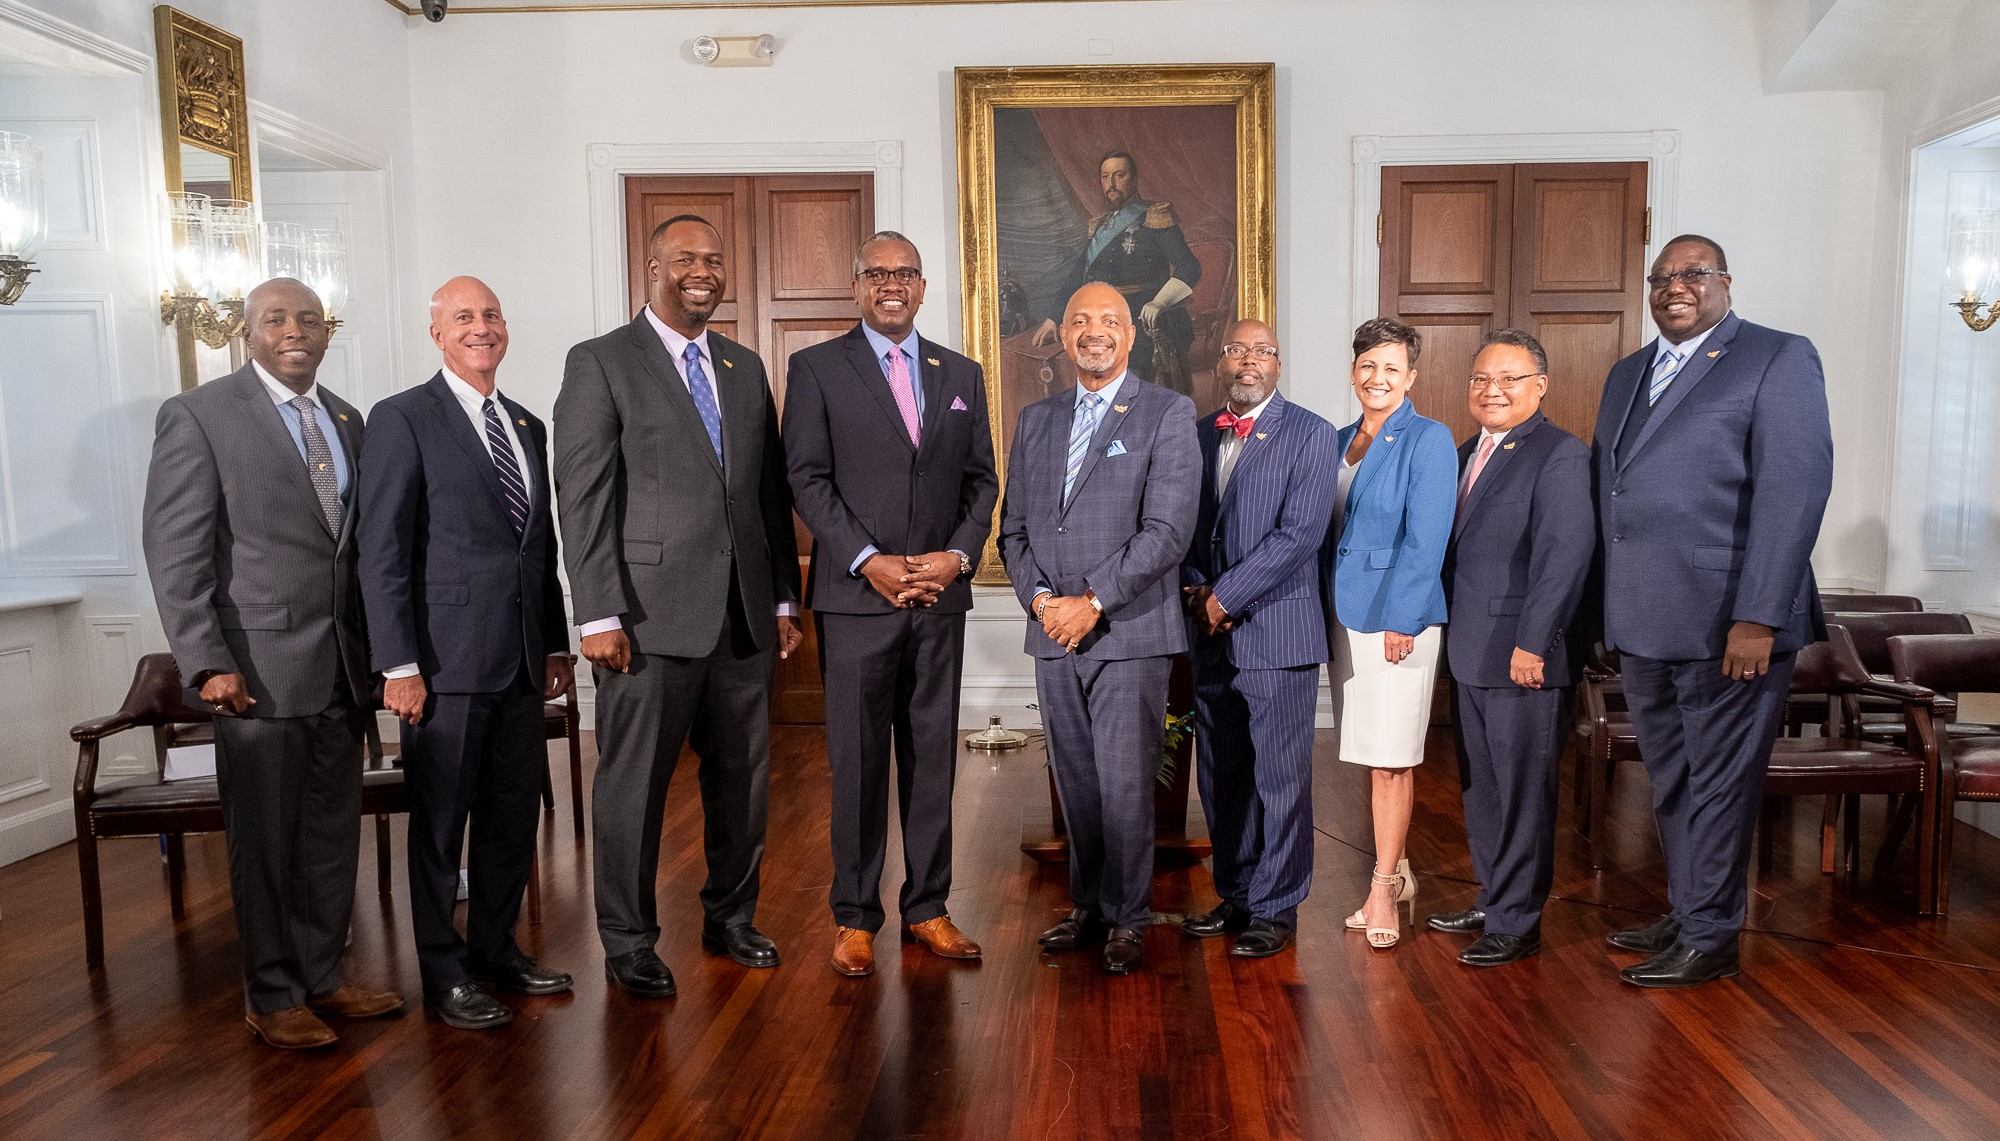 Gov. Bryan Hosts Final Swearing-in Ceremony for Last Seven Cabinet Members